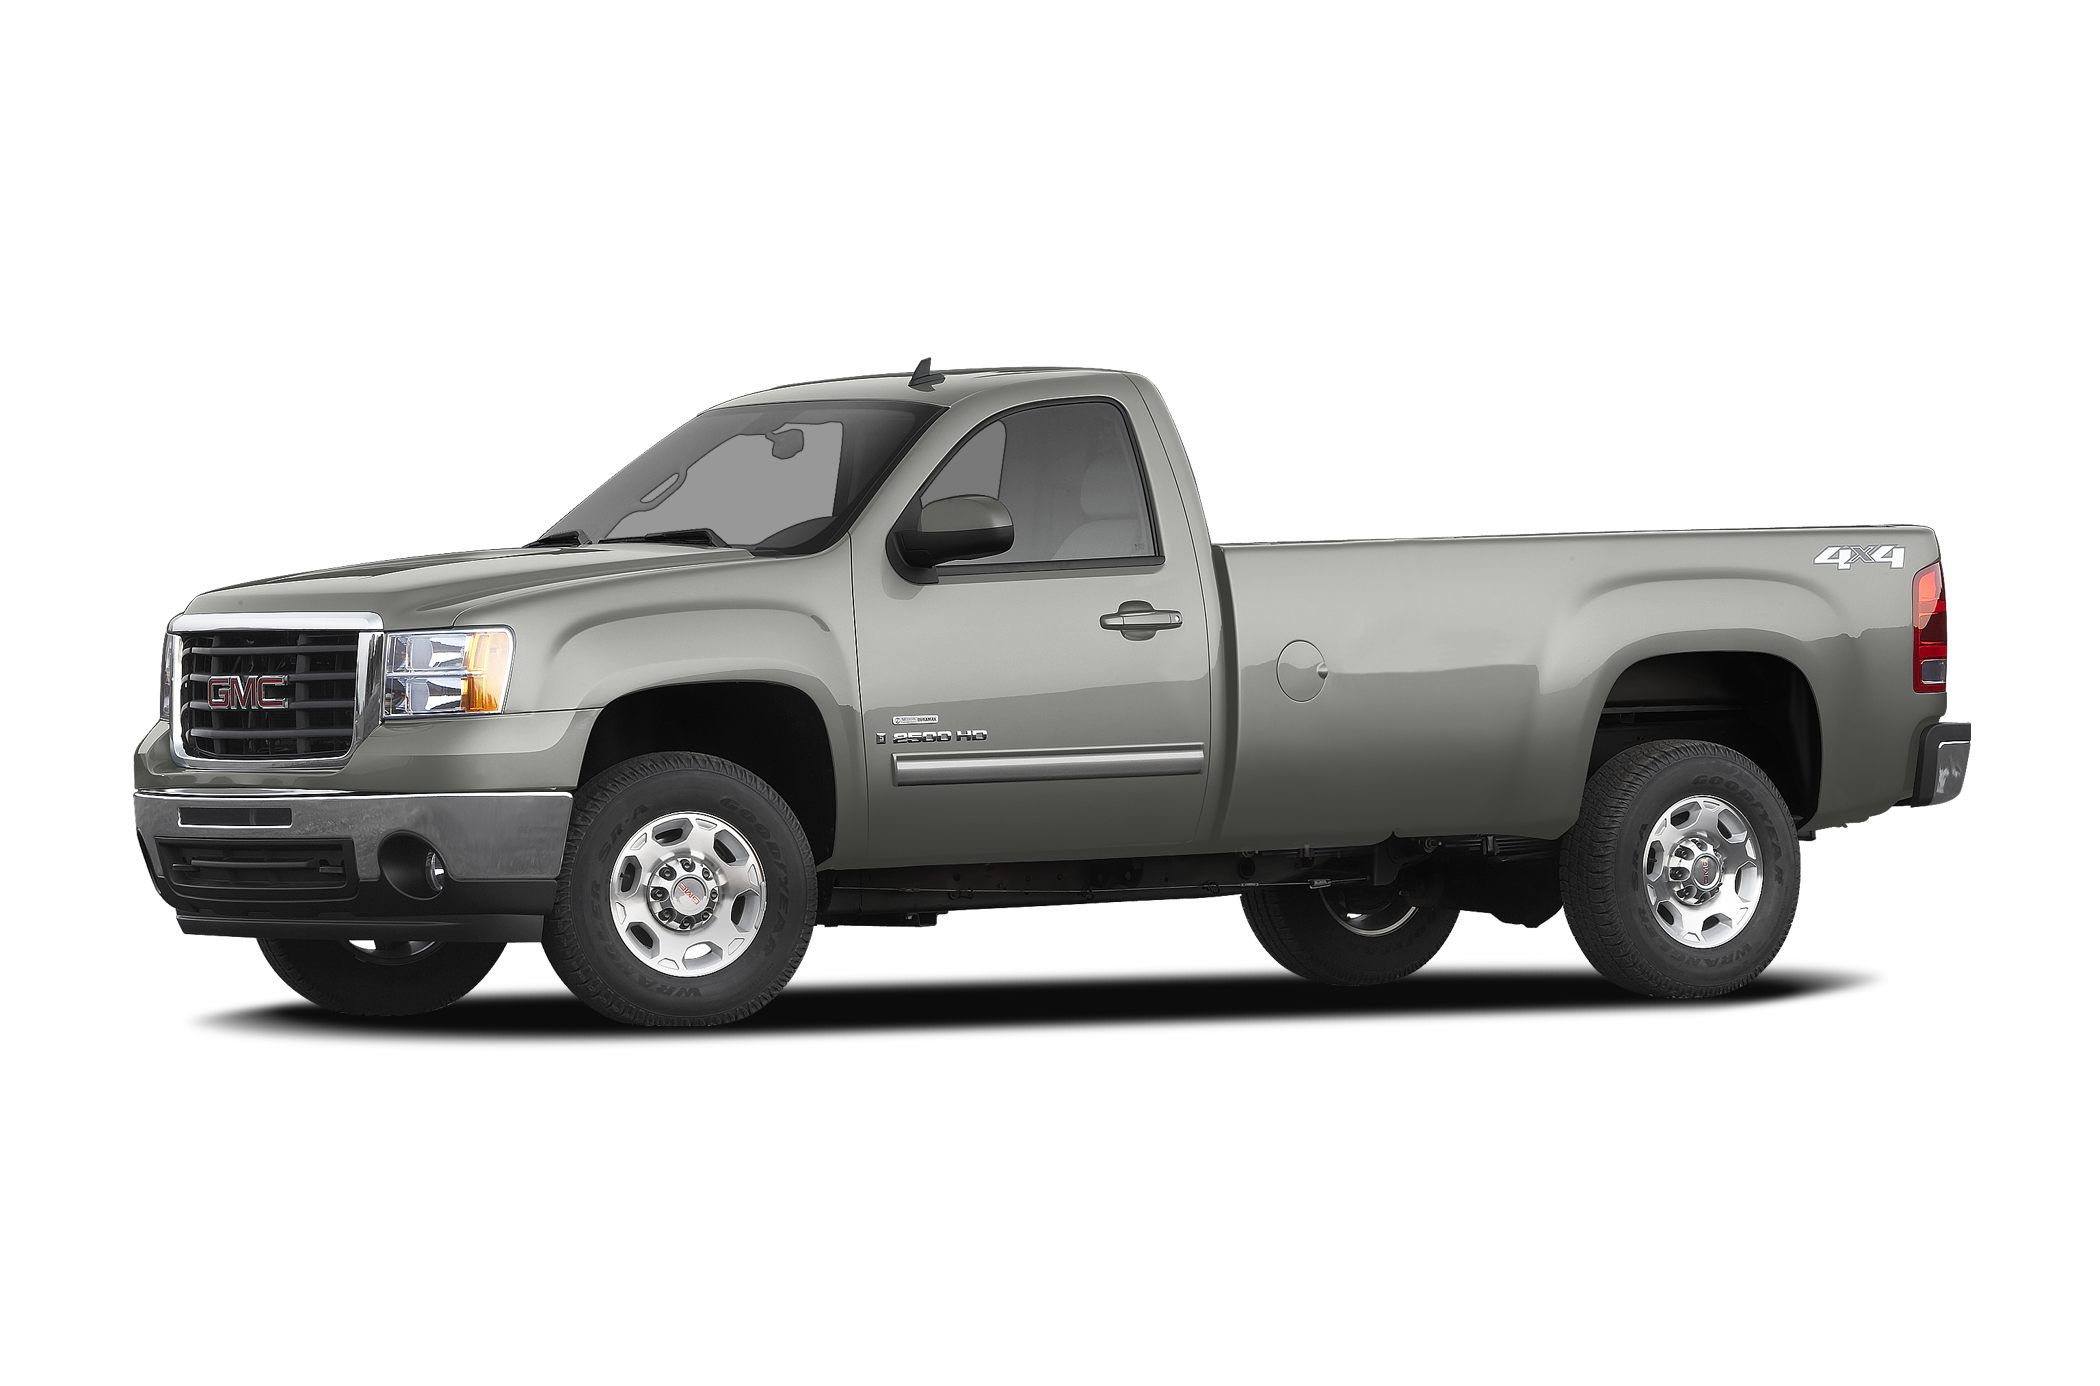 2009 Gmc Sierra 3500hd Pricing And Specs